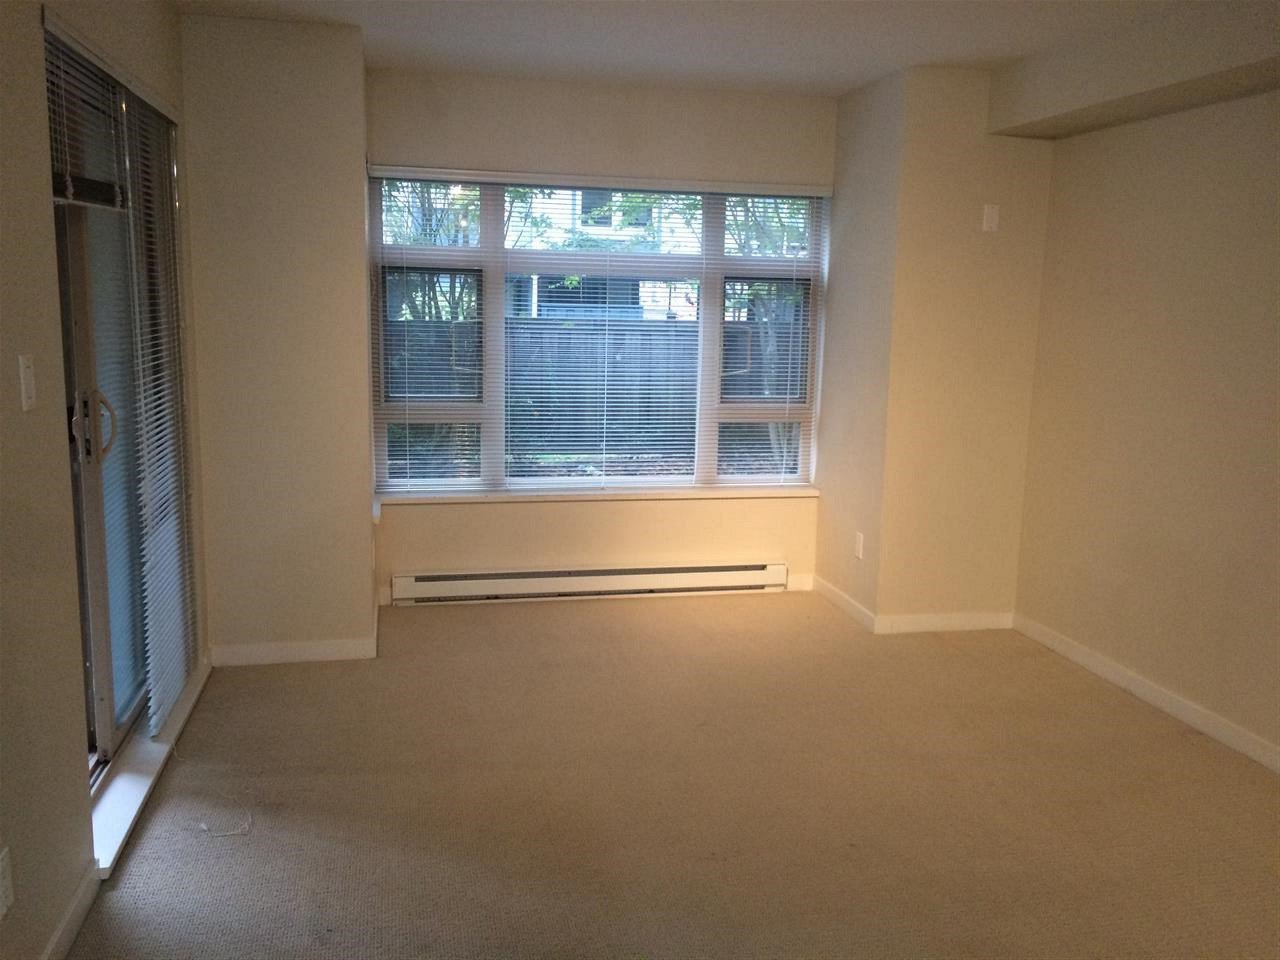 Photo 2: Photos: 208 7337 MACPHERSON Avenue in Burnaby: Metrotown Condo for sale (Burnaby South)  : MLS®# R2208258